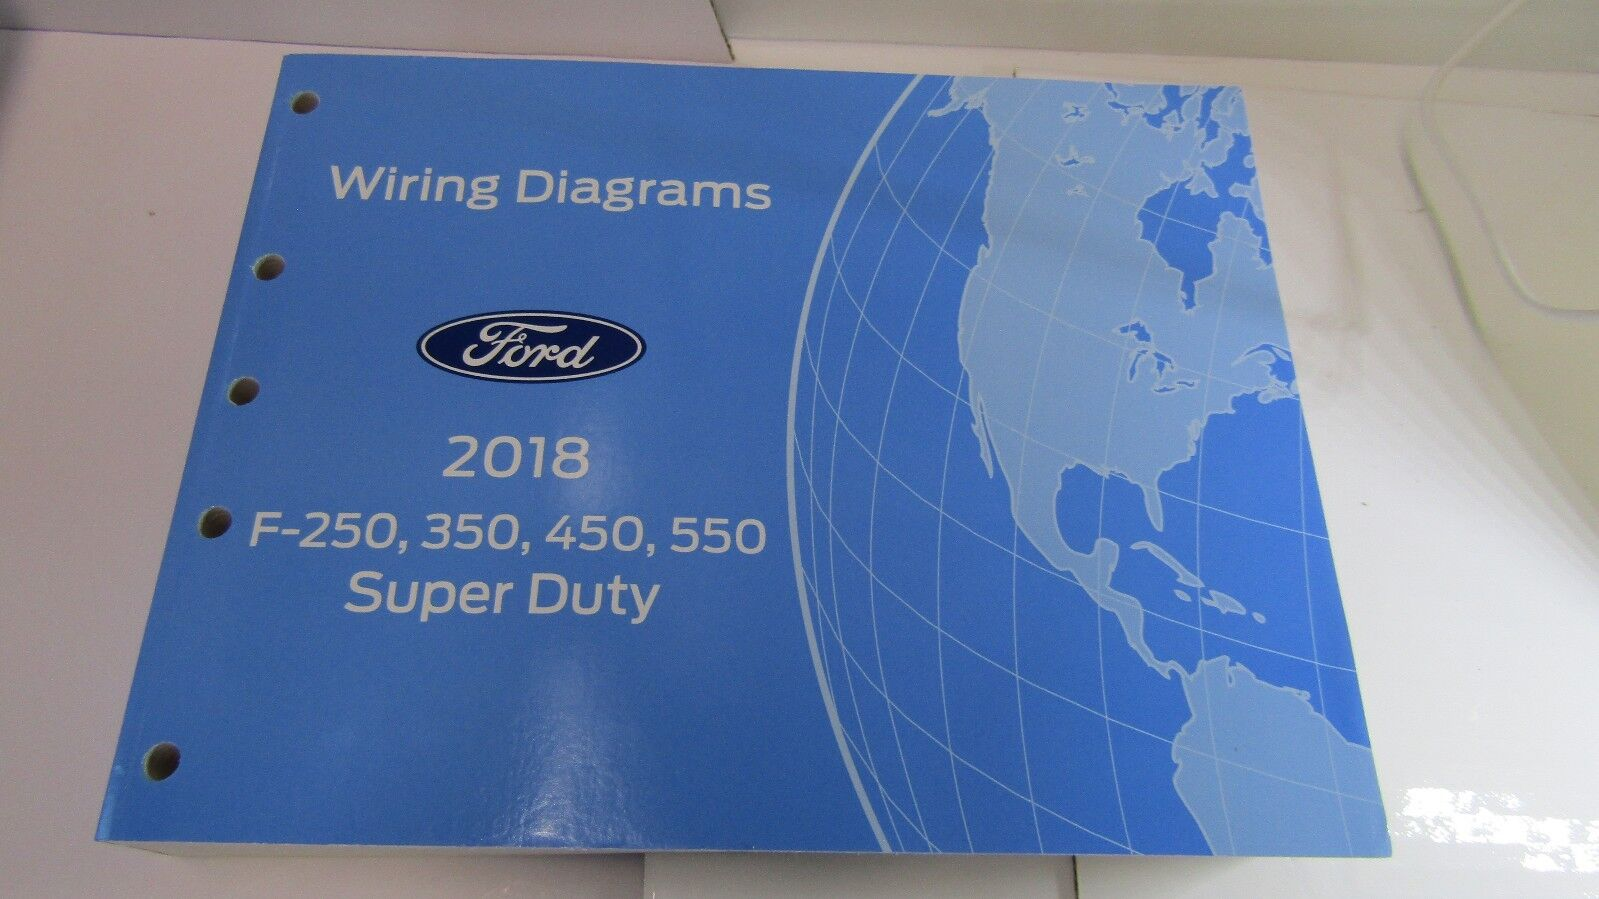 2018 FORD TRUCK WIRING DIAGRAMS F-250 F-350 F-450 F-550 GAS & 6.7L TURBO DIESEL